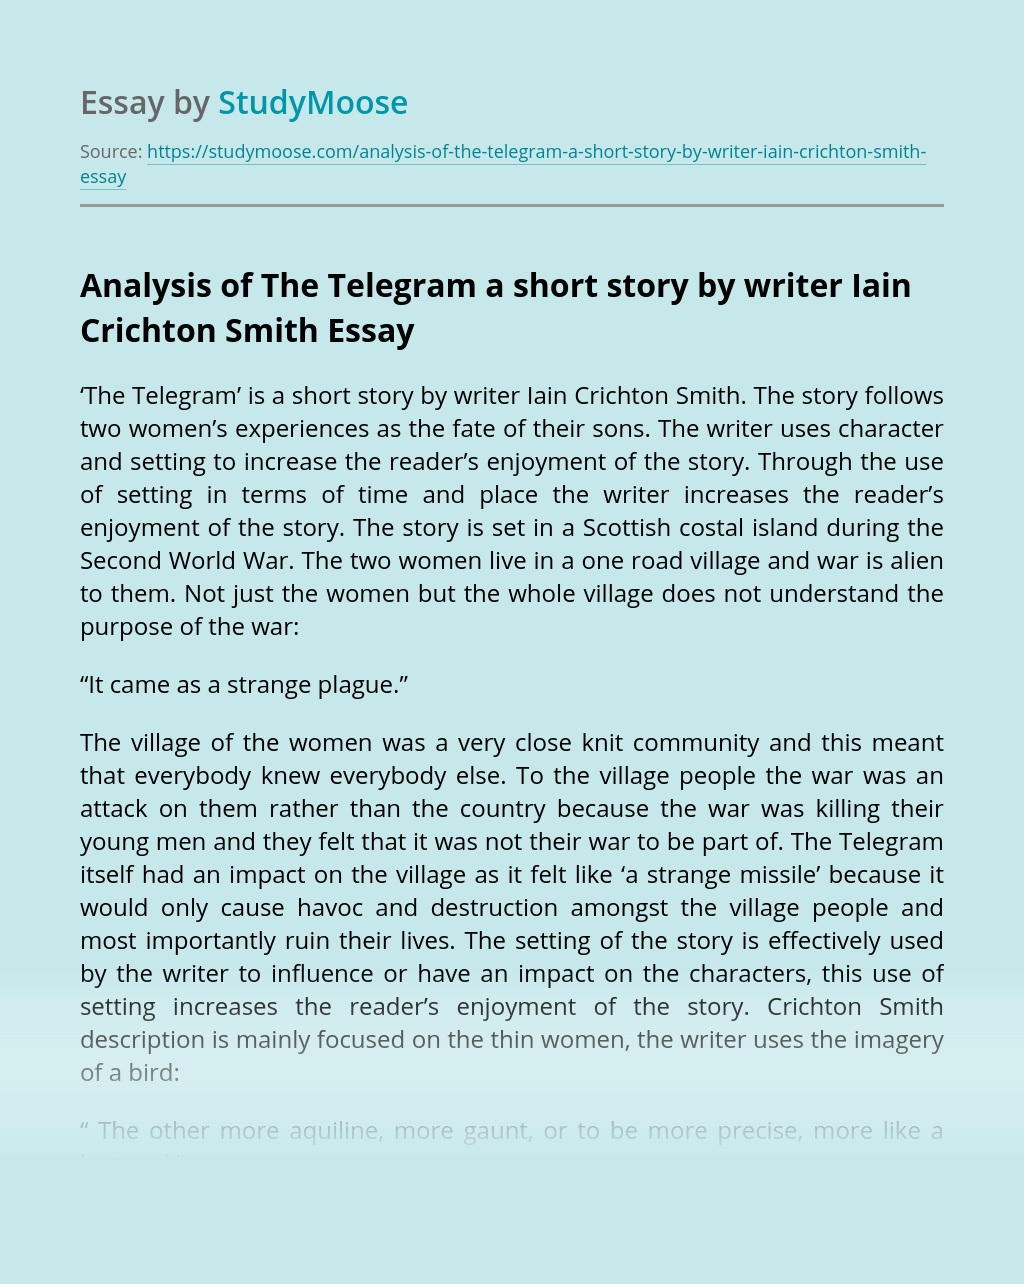 Analysis of The Telegram a short story by writer Iain Crichton Smith